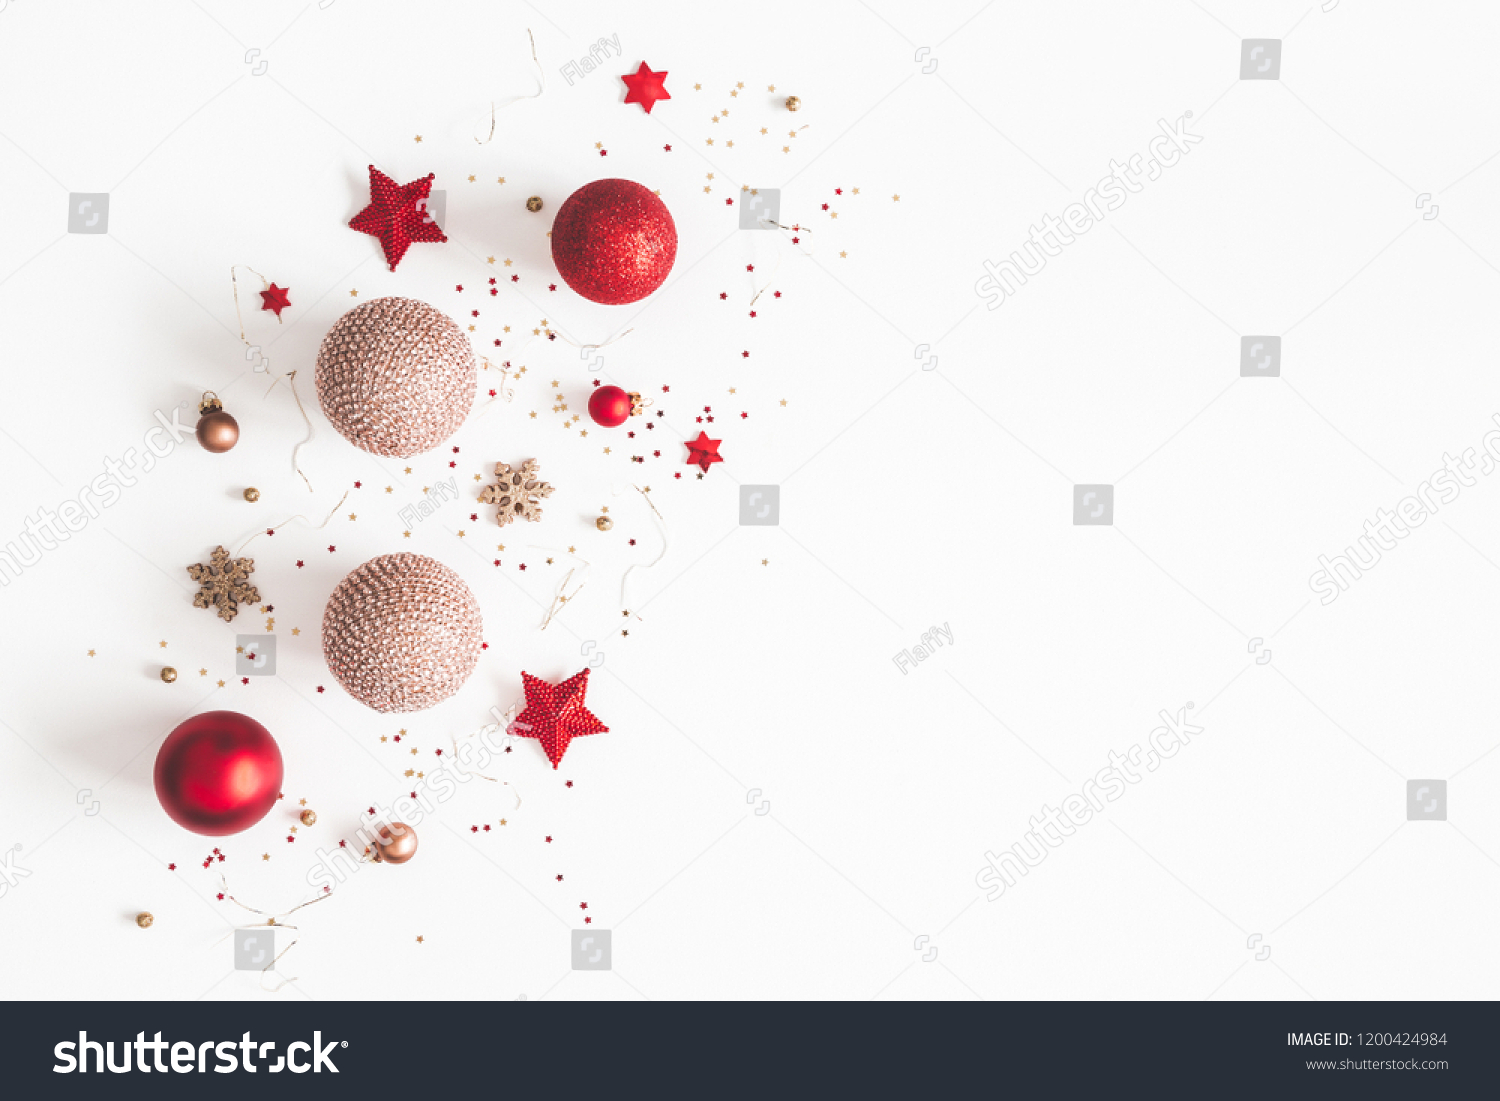 Christmas composition. Christmas red and golden decorations on white background. Flat lay, top view, copy space #1200424984